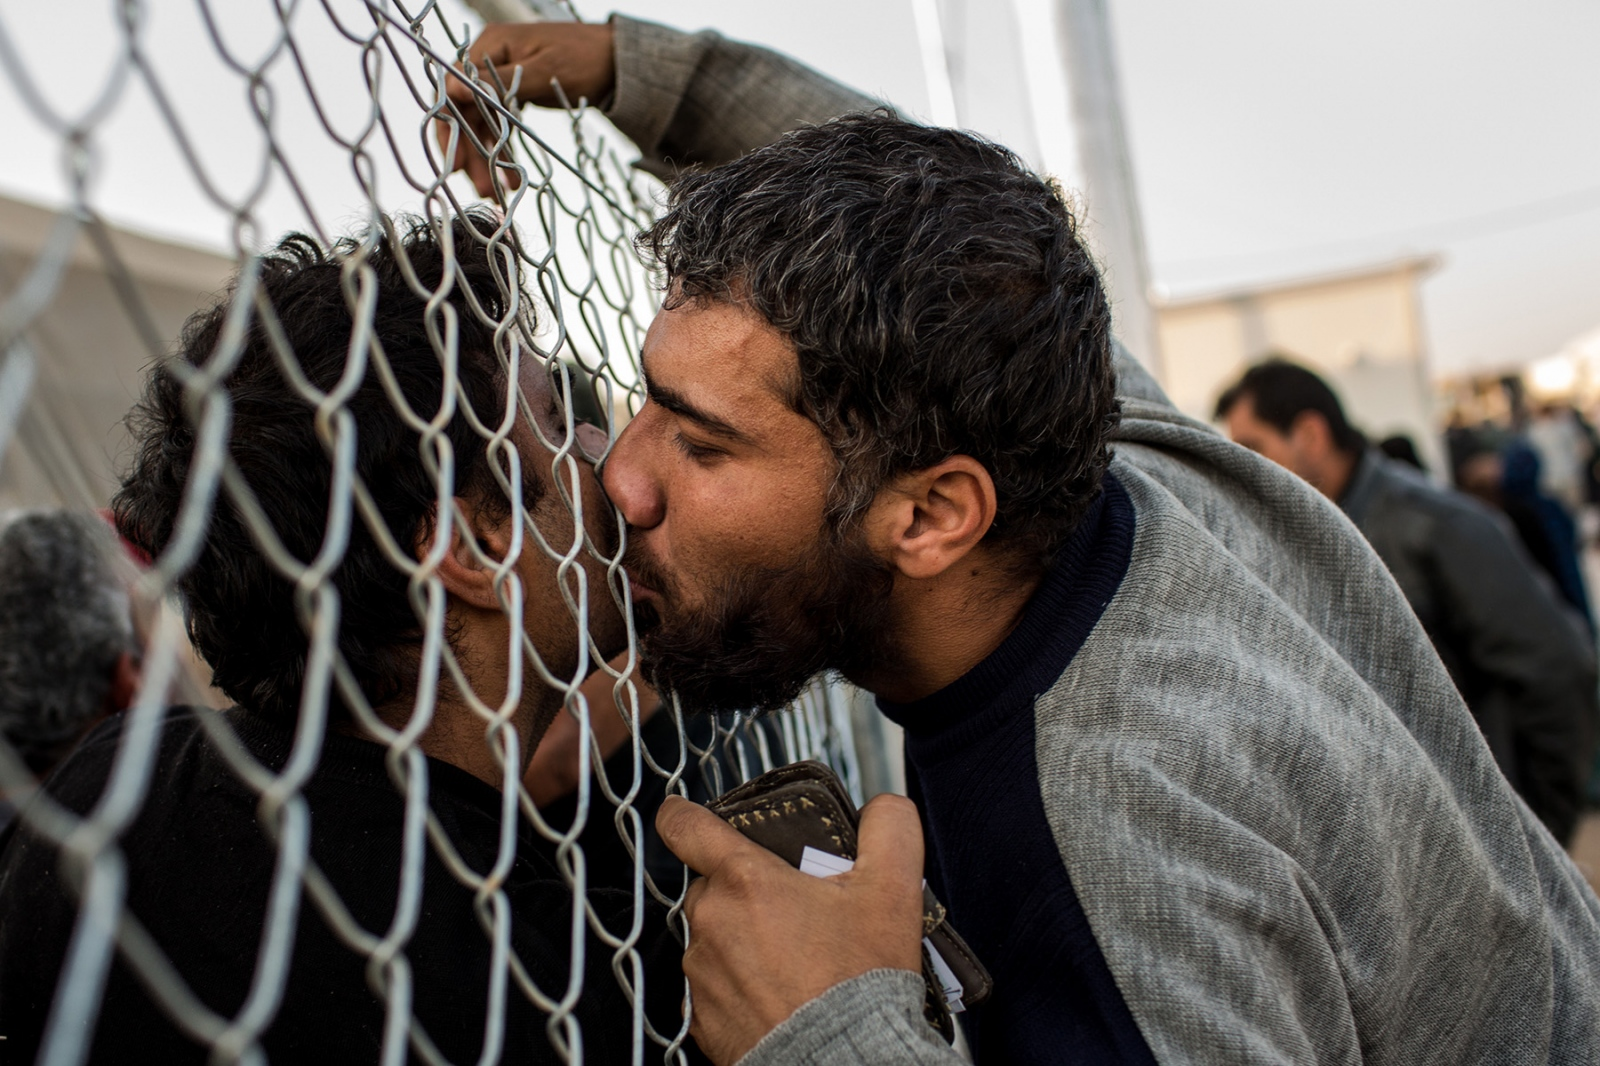 A man kisses his brother through the fence at the Hassan Shami camp near Mosul, Iraq, November 2016. The two brothers, who were separated from each other when the offensive to retake Mosul began, had not seen each other for nearly two weeks, both fearing for each others' lives as the fighting intensified. They shed tears of joy at having finally been reunited at the camp.